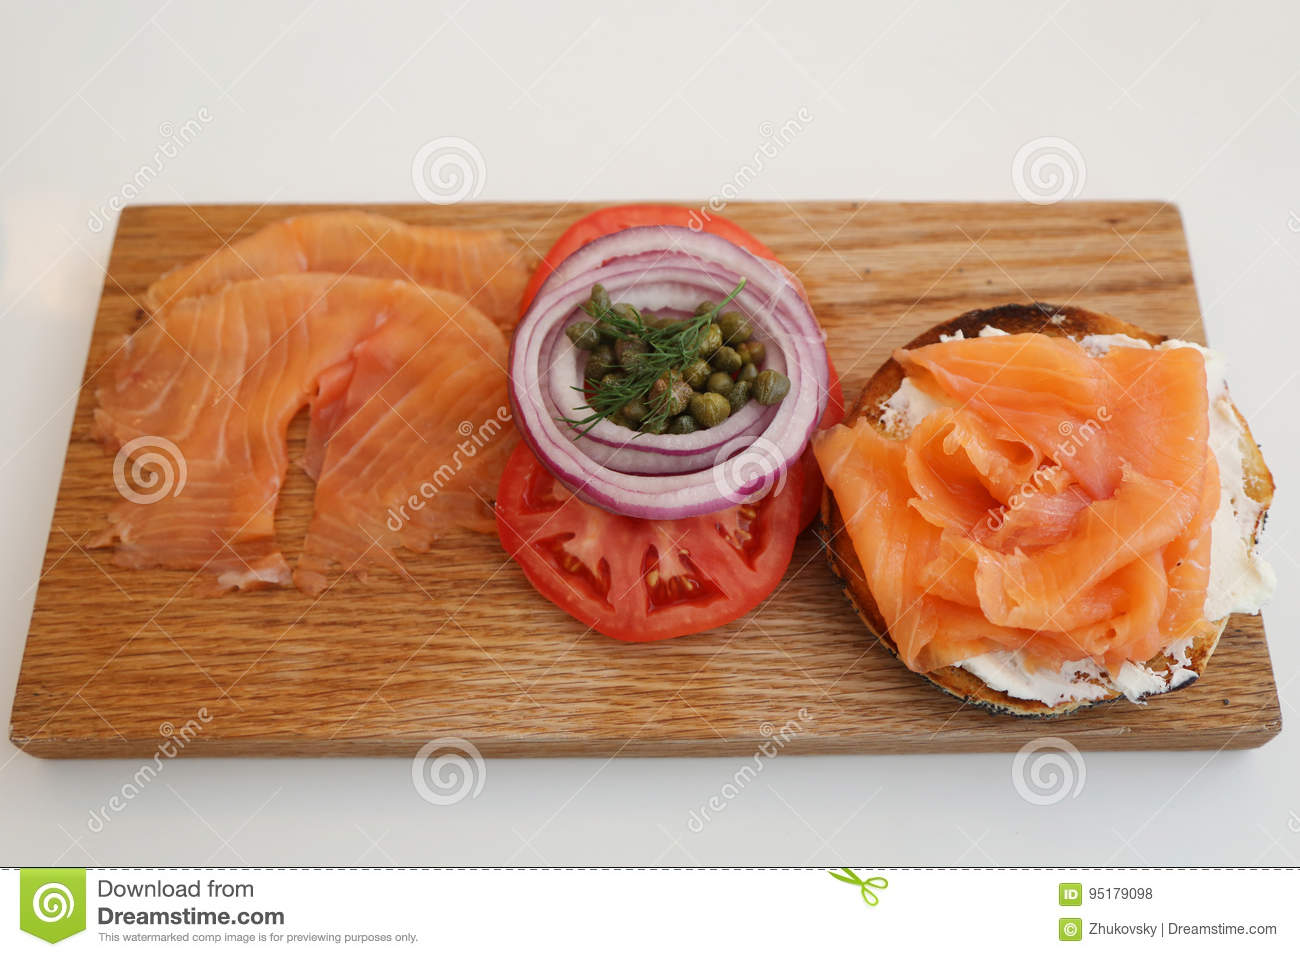 New York Style Bagel with smoked salmon on wooden board with cream cheese, tomato, onion and capers